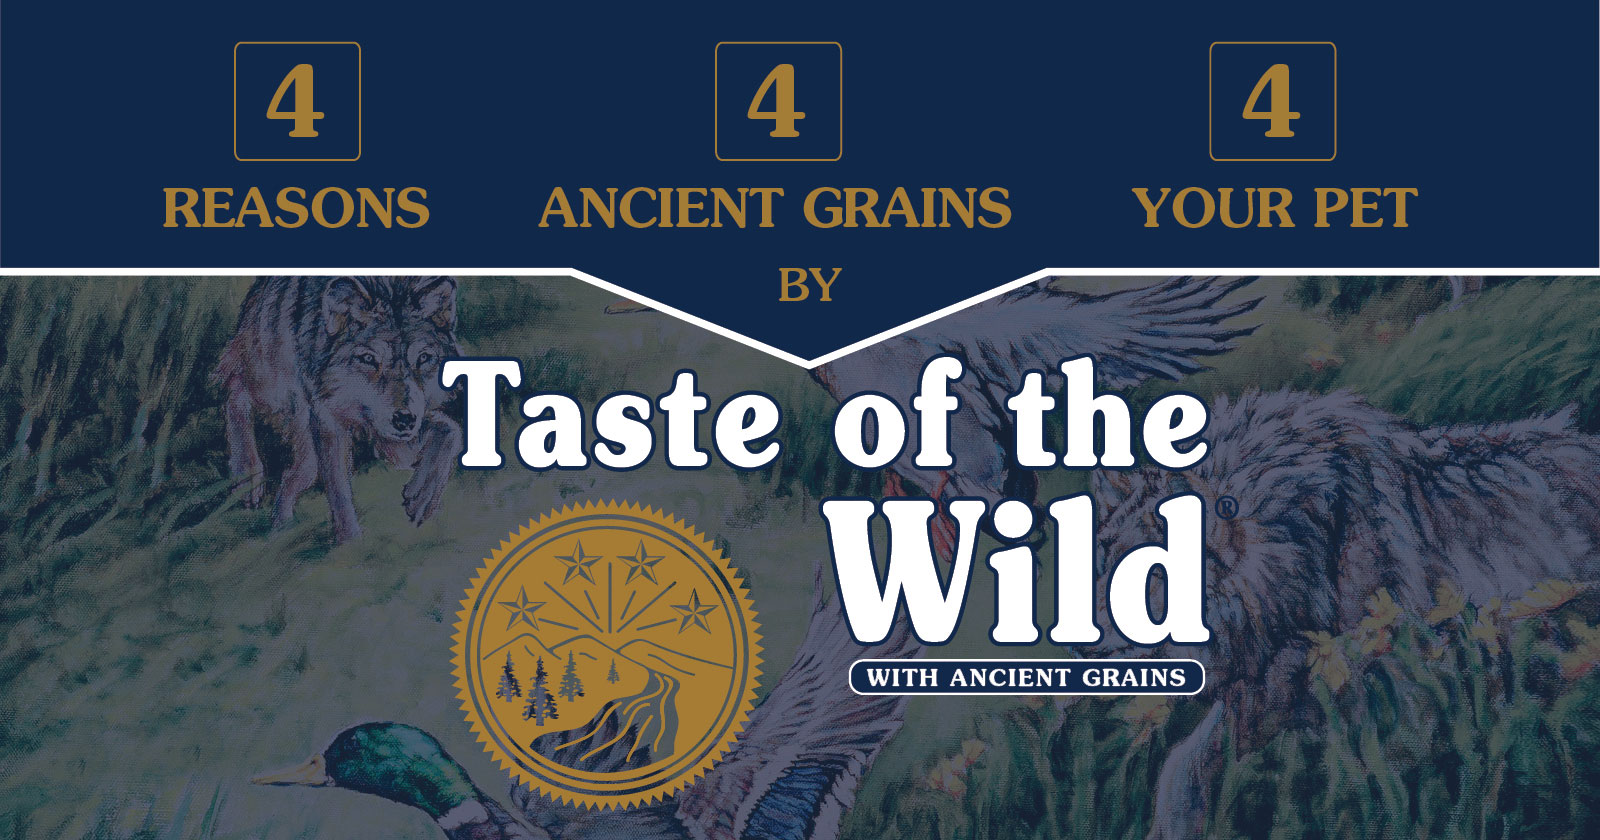 Taste of the Wild with Ancient Grains Benefits | Taste of the Wild